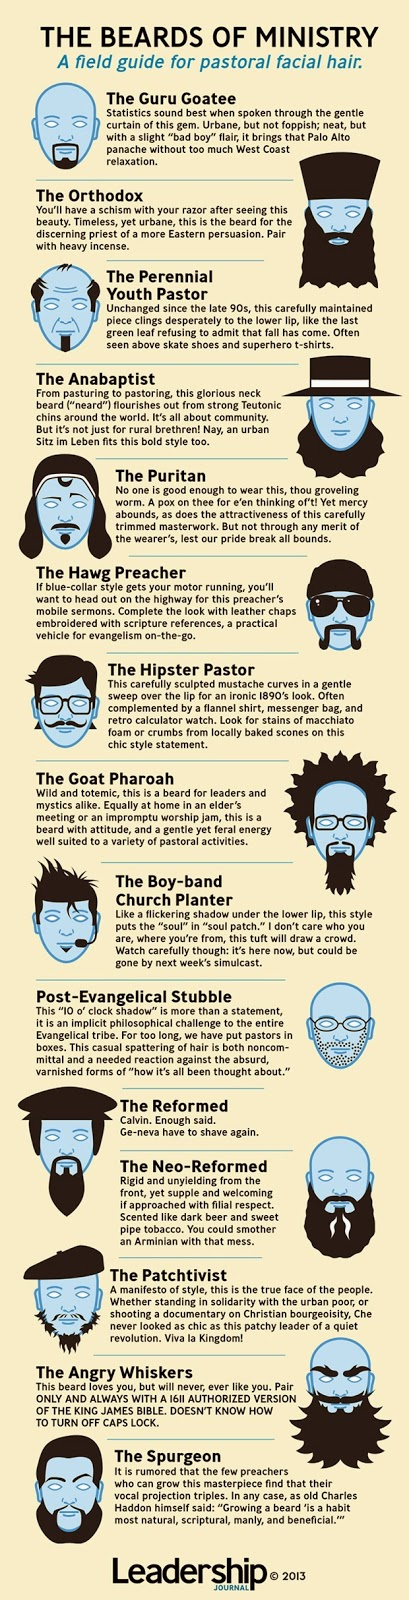 http://www.christianitytoday.com/le/2013/february-online-only/beards-of-ministry.html